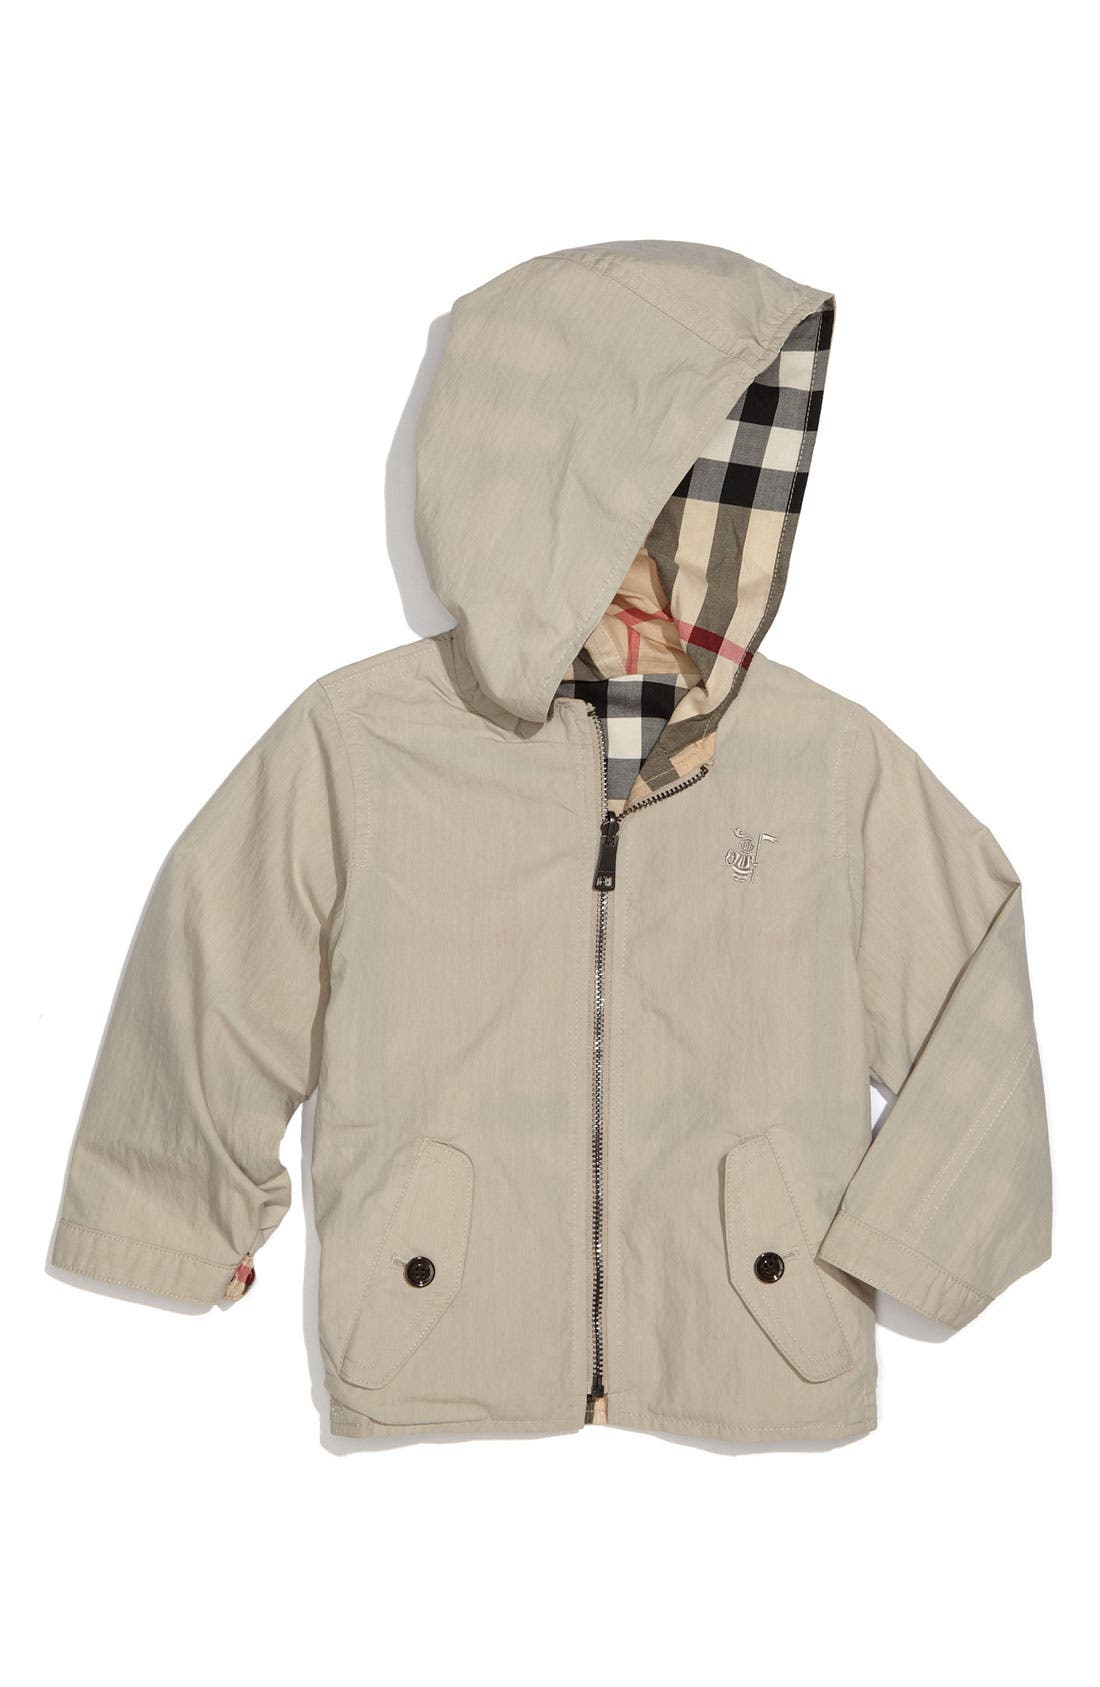 Alternate Image 1 Selected - Burberry Reversible Jacket (Toddler)